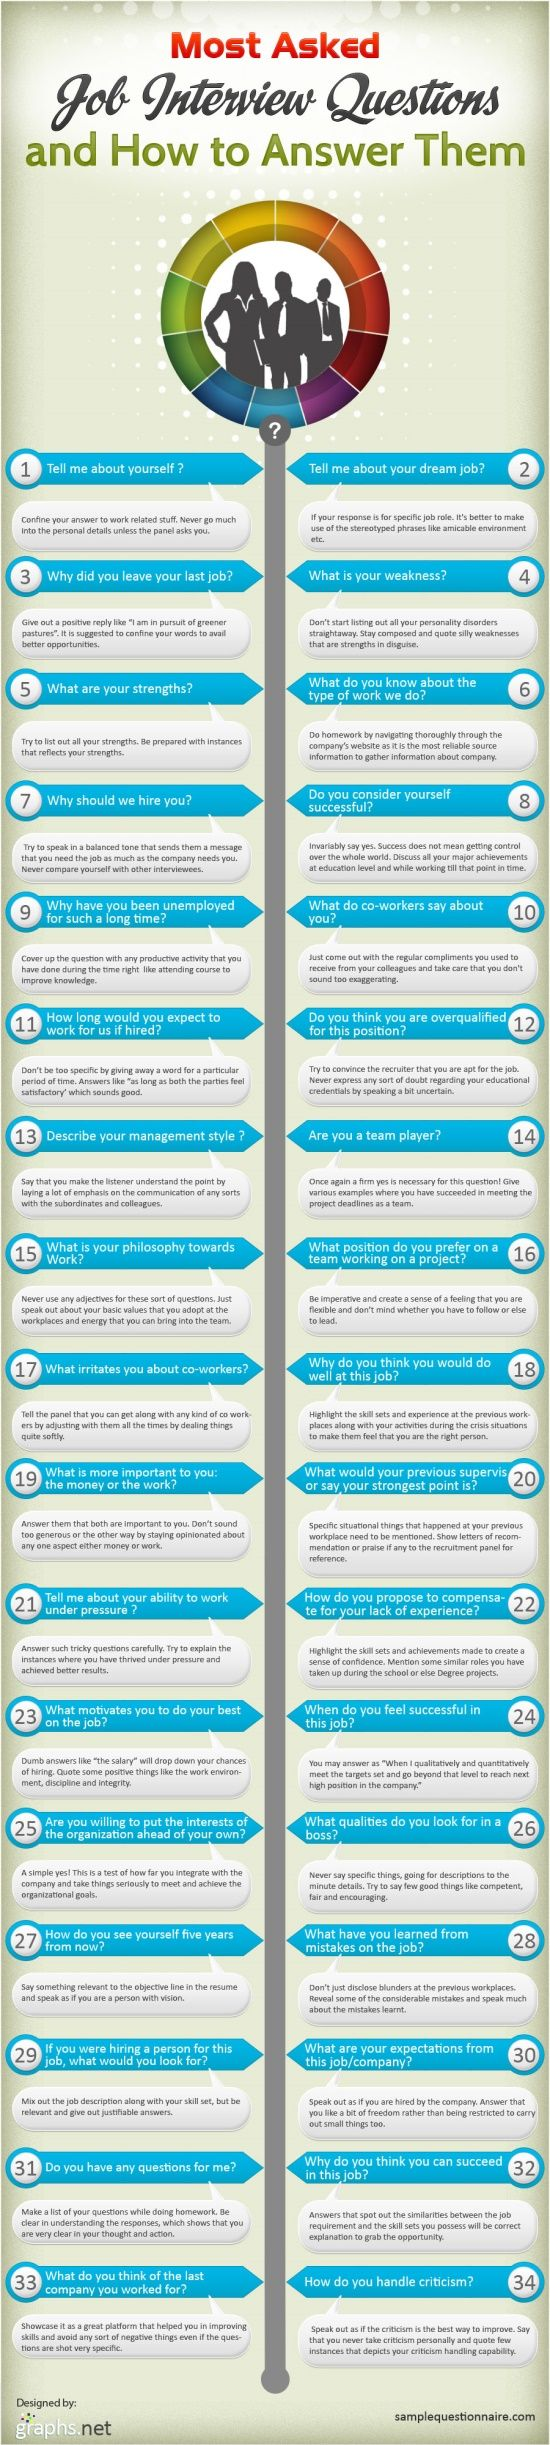 Check out this list of most asked job interview questions. This is a great refresher for someone changing jobs or a recent graduate!